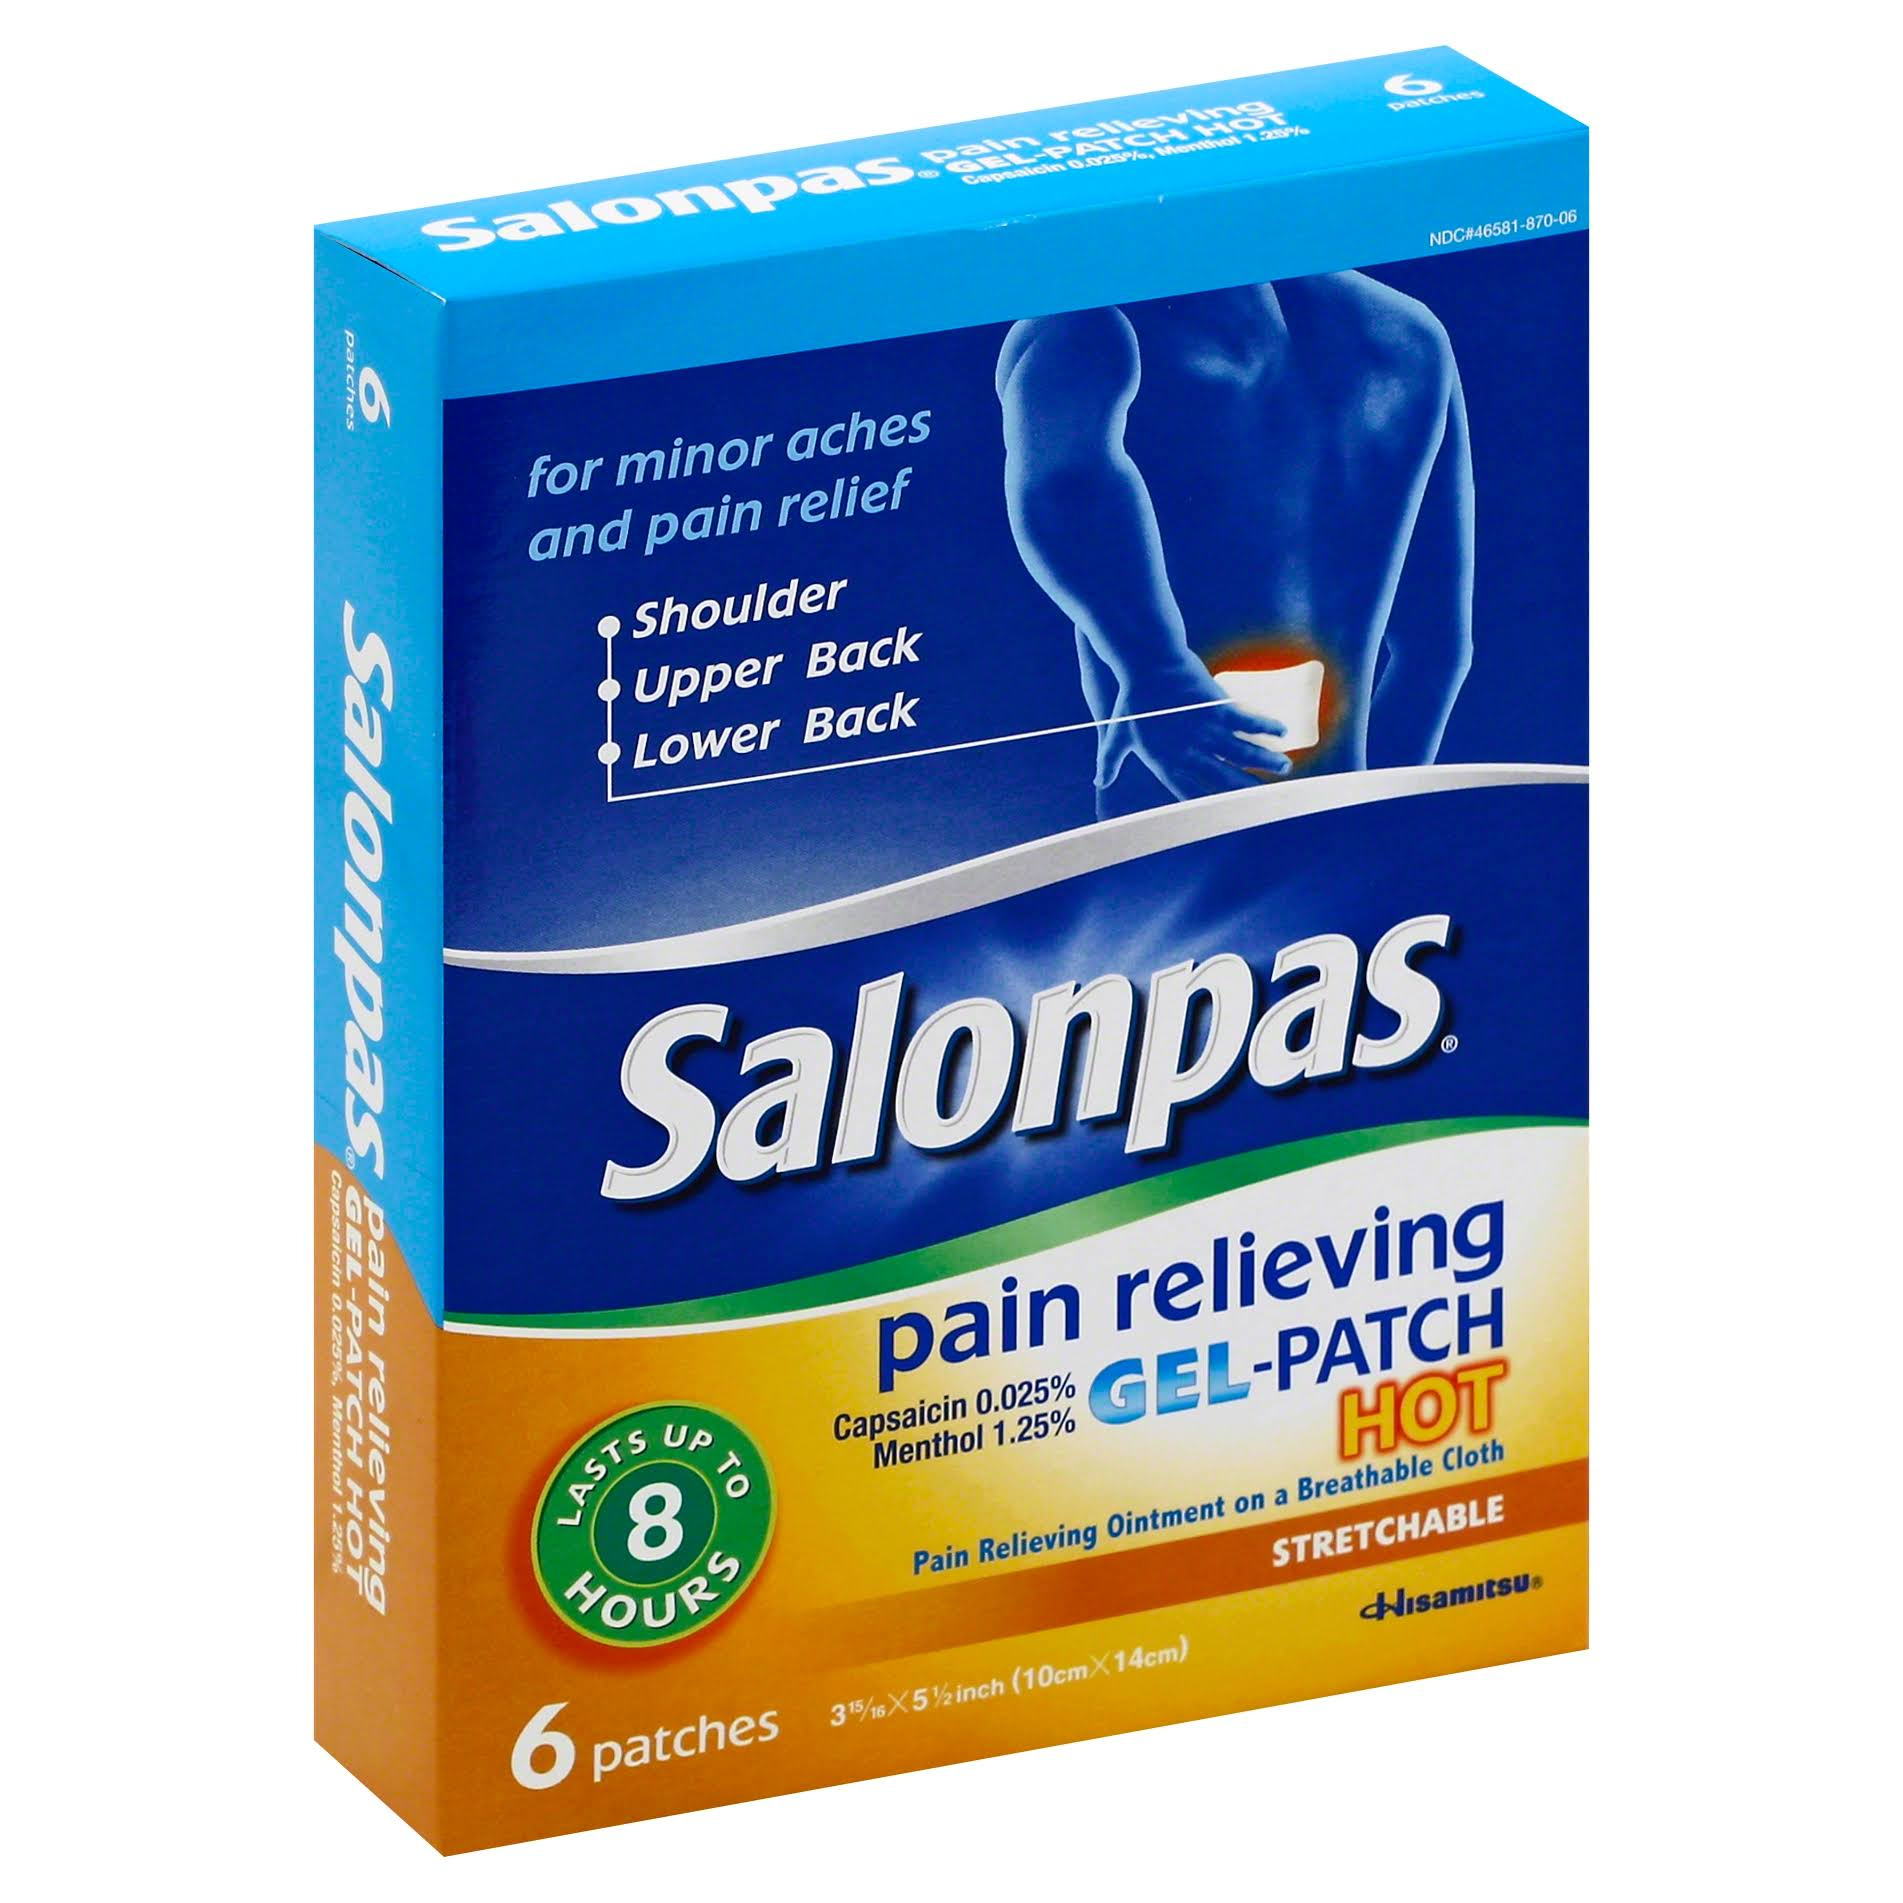 Hisamitsu Salonpas Pain Relieving Gel-Patches - Hot, 10cm X 14cm, 6 Pack